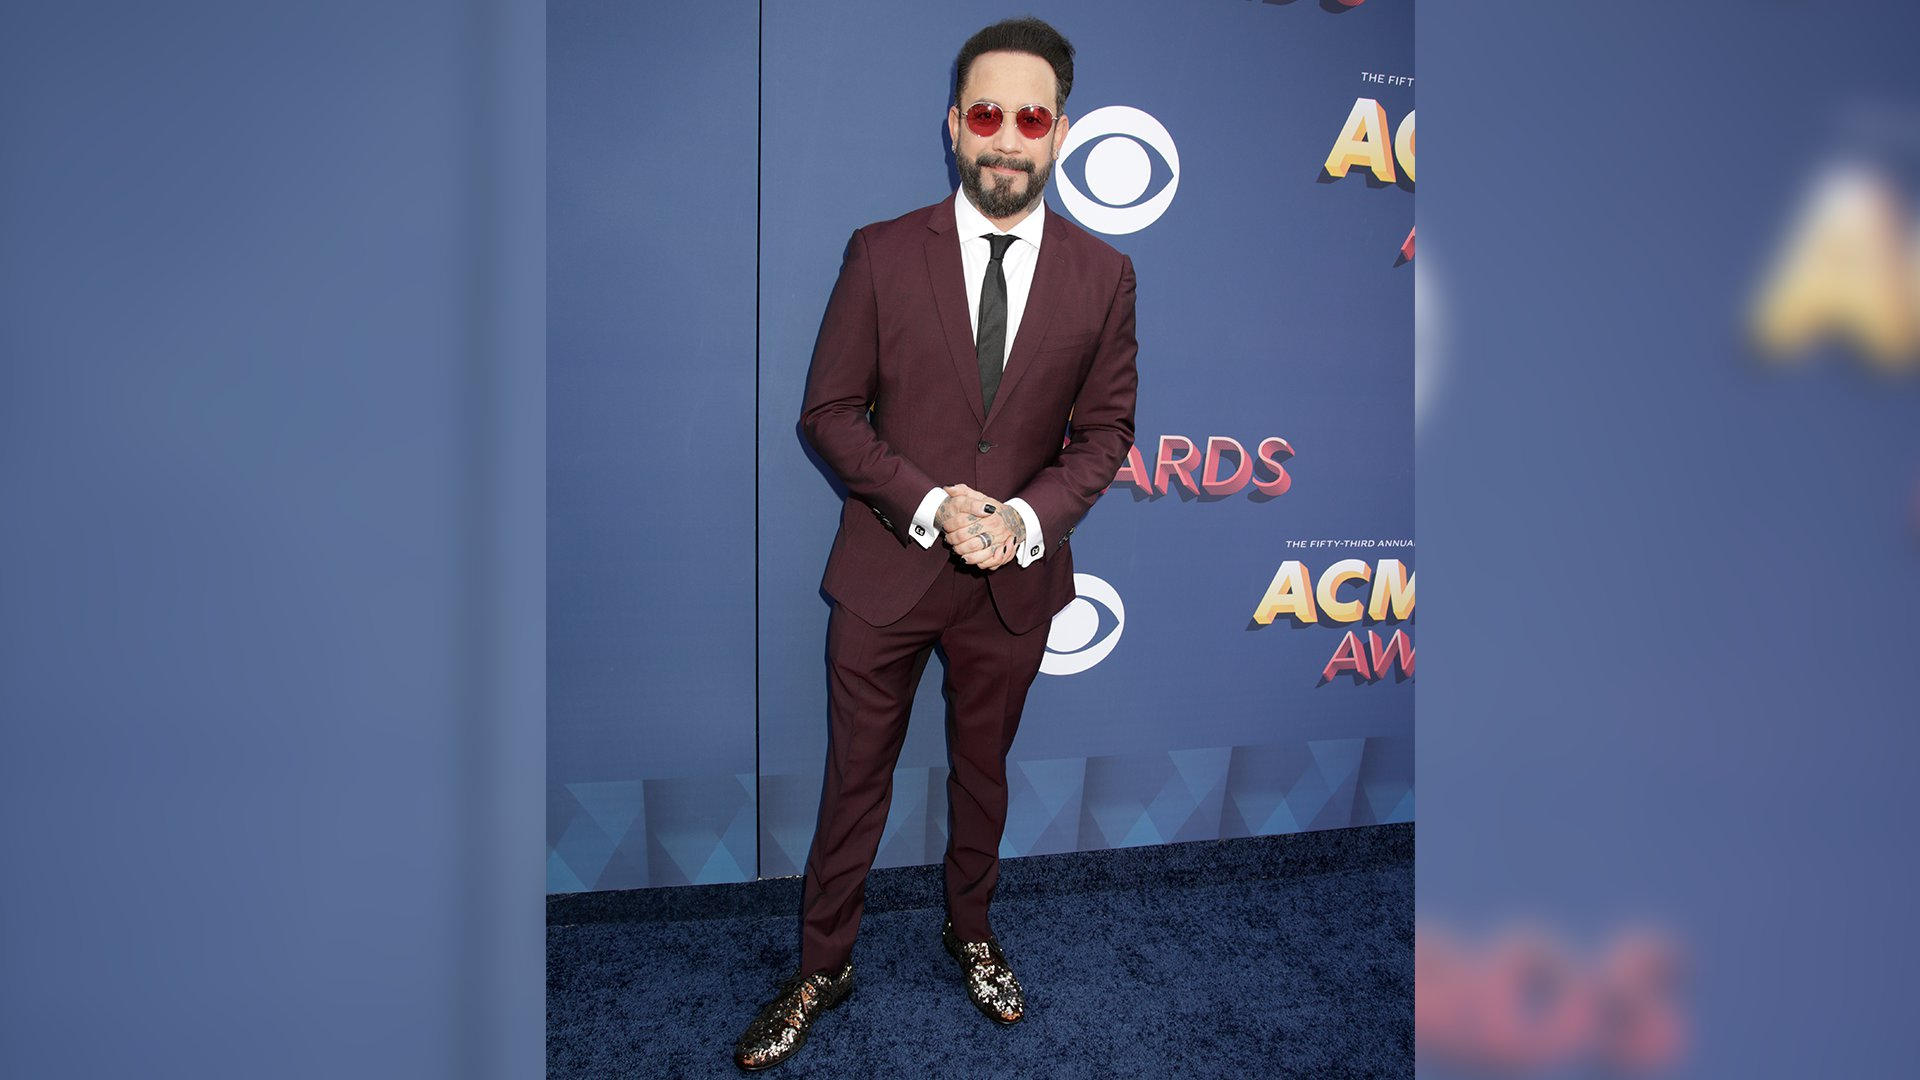 After performing with Florida Georgia Line last year, Backstreet Boys' AJ McLean is back in Vegas for Country Music's Party of the Year.